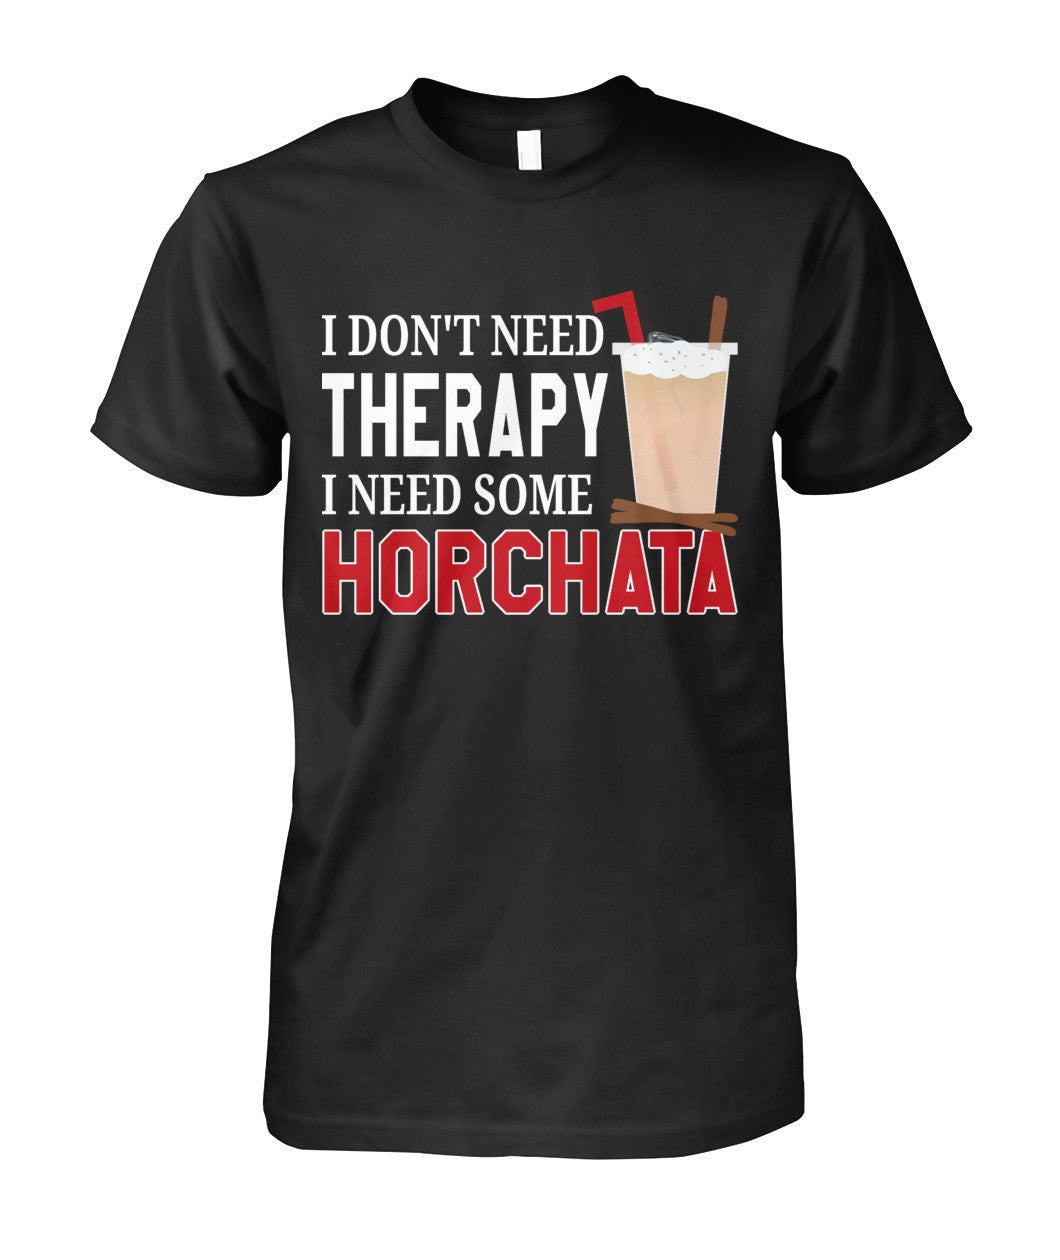 Horchata, Not Therapy